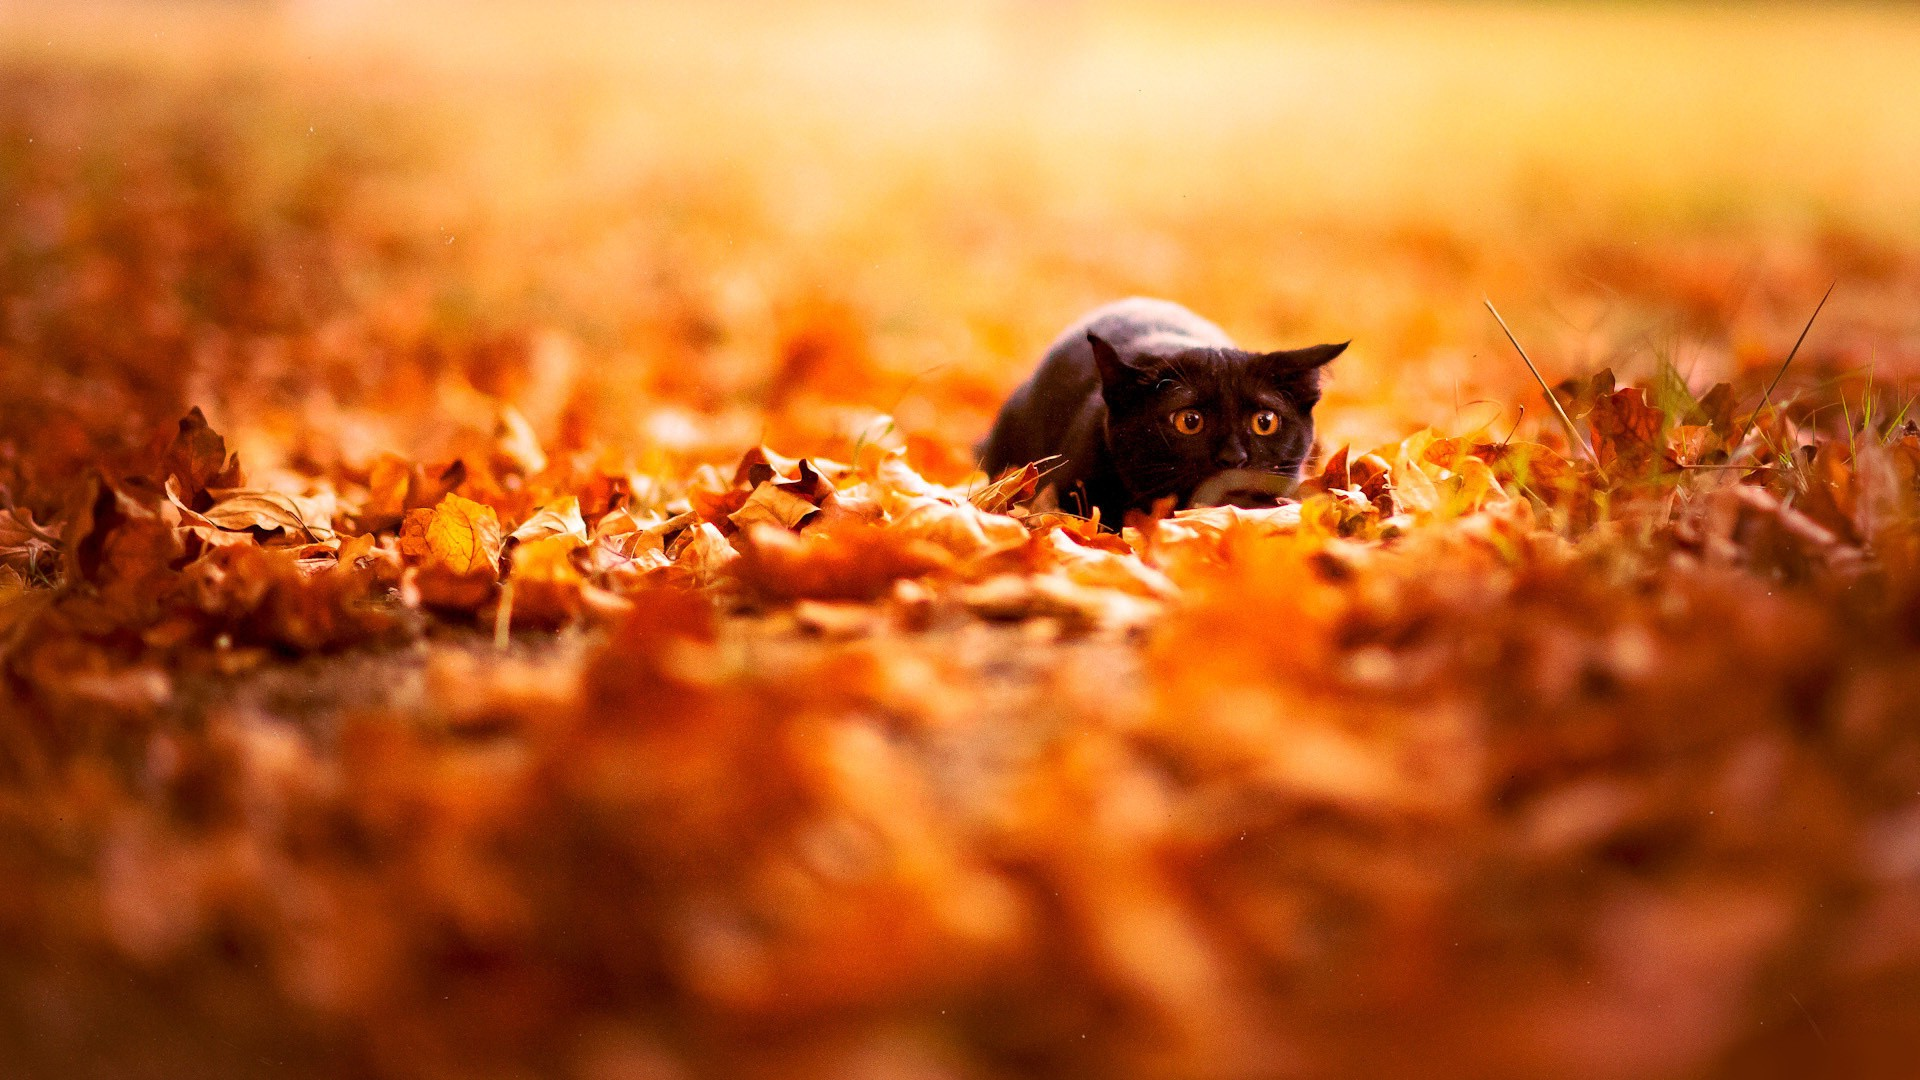 Fall Kittens Wallpaper Feline Depth Of Field Cat Nature Leaves Fall Animals